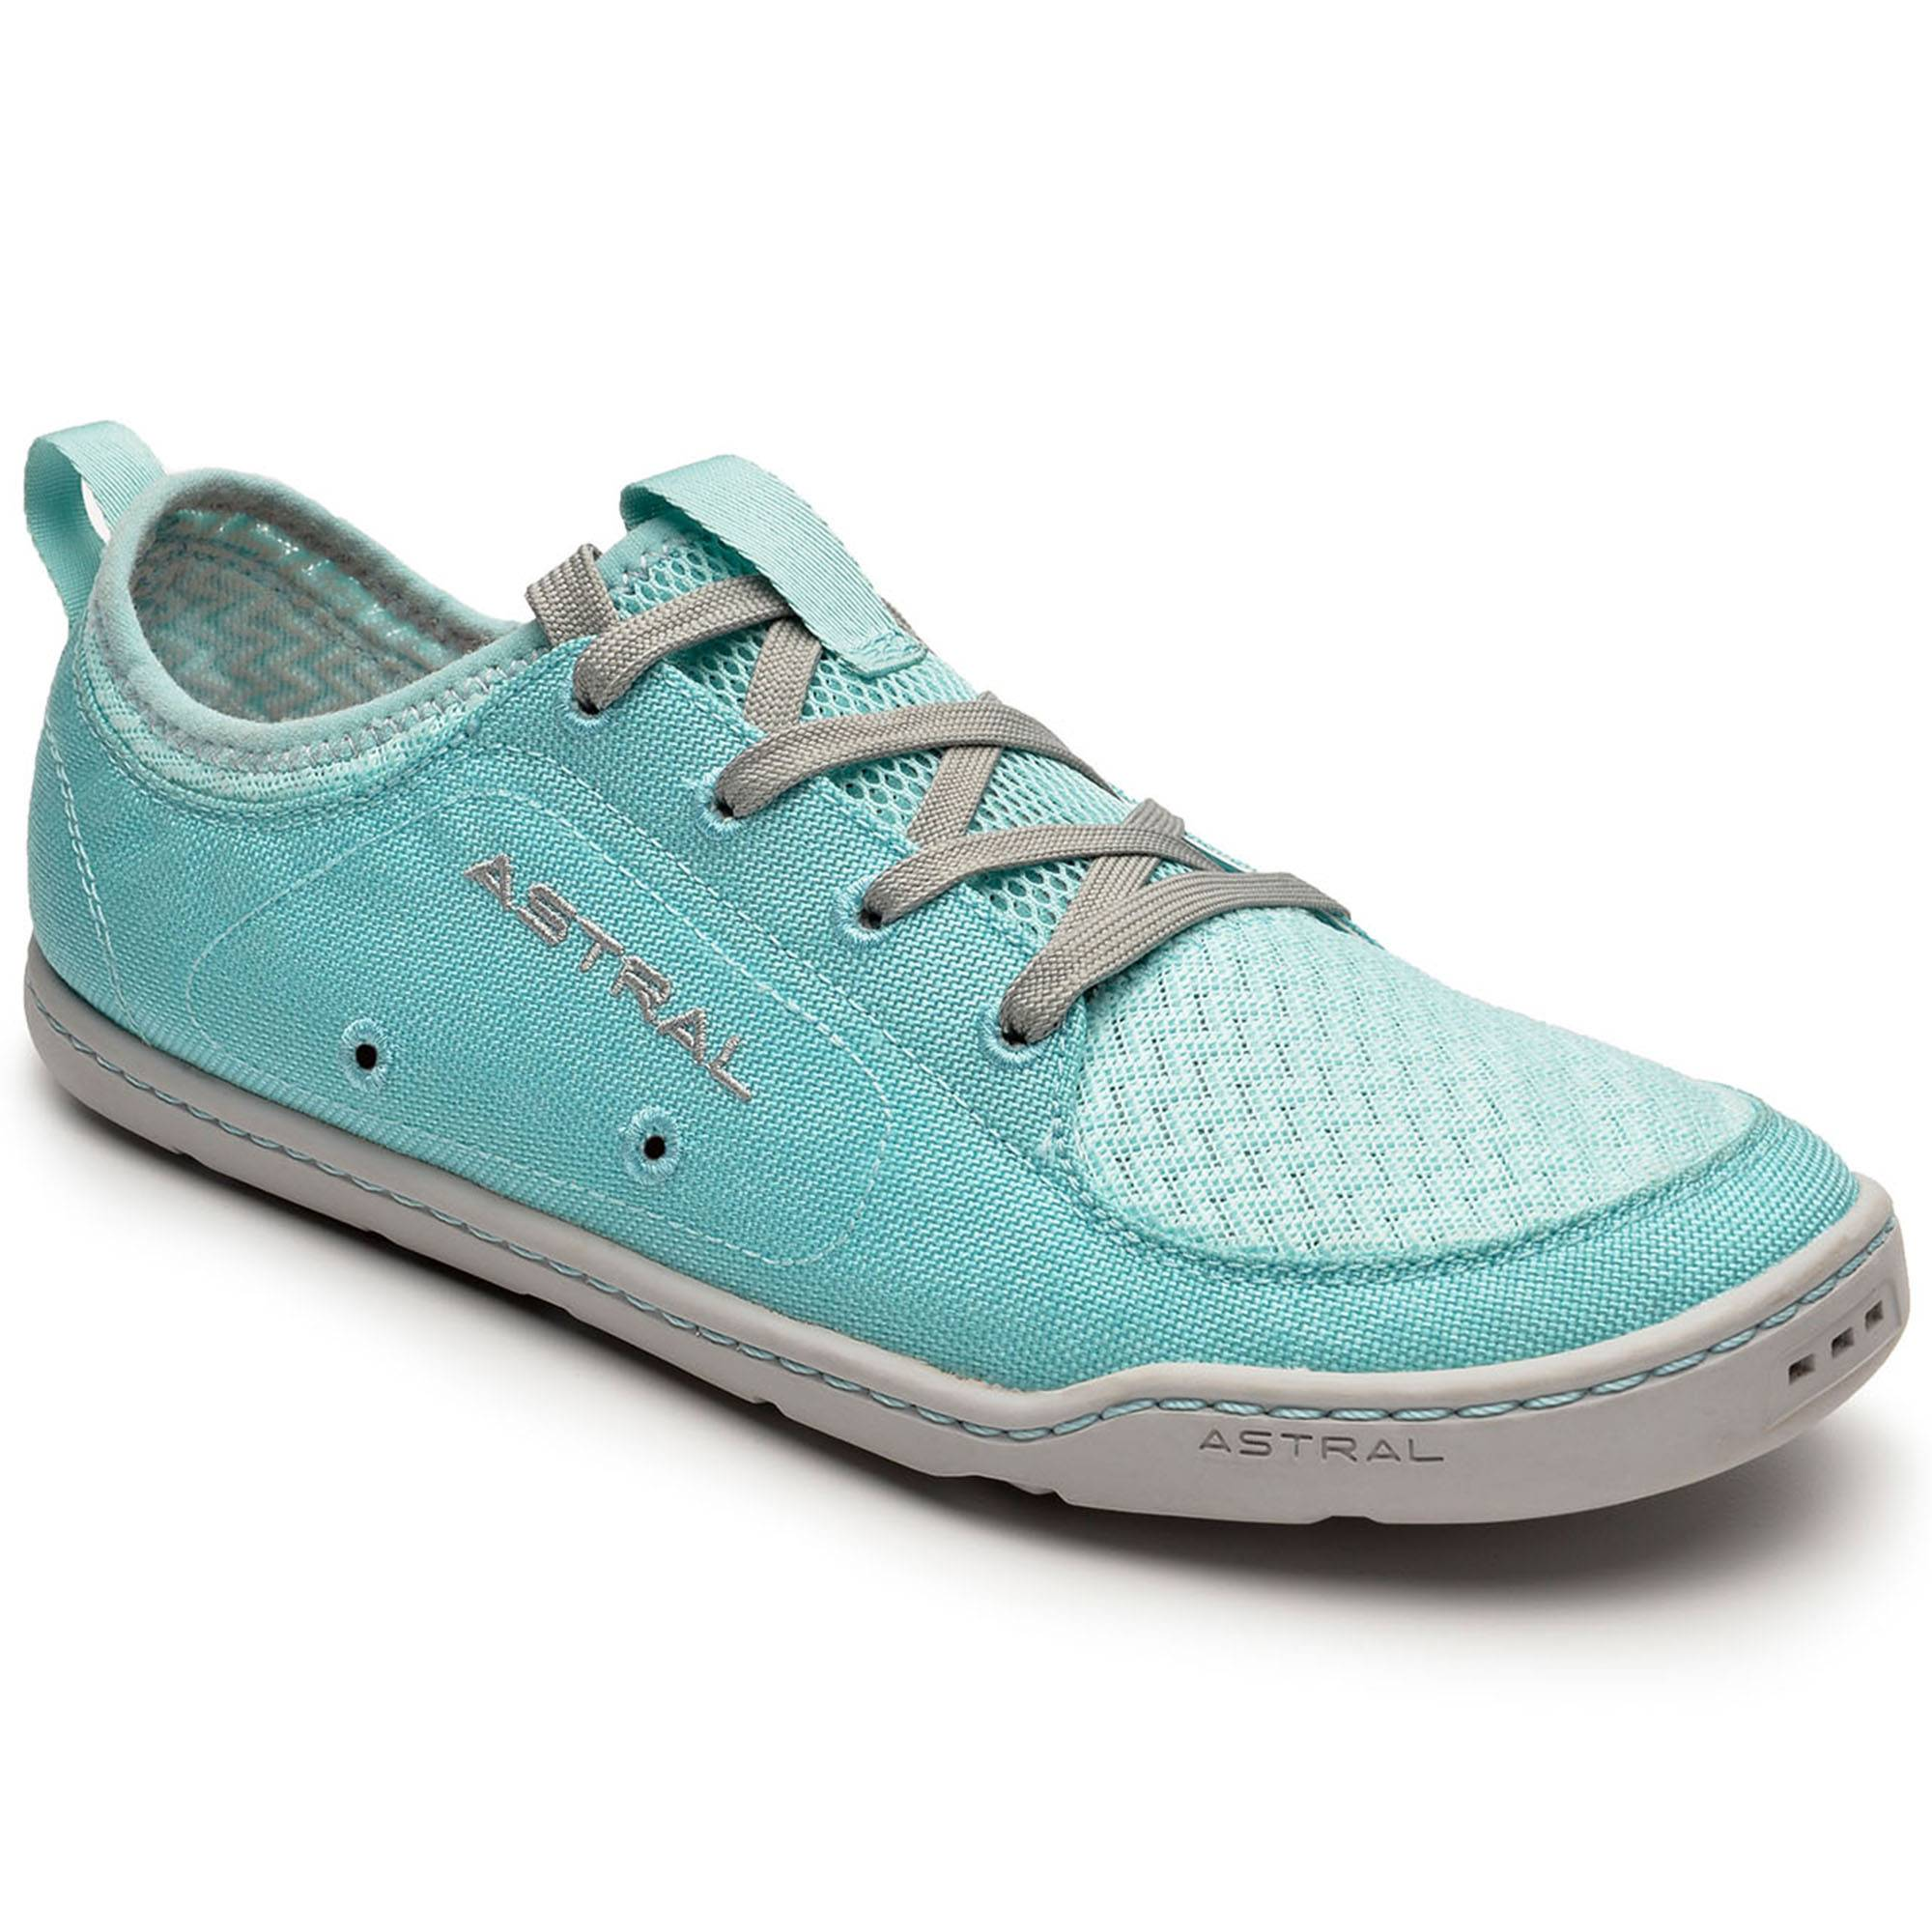 Astral Women's Loyak Water Shoes  - Turquoise Gray - Size: 8